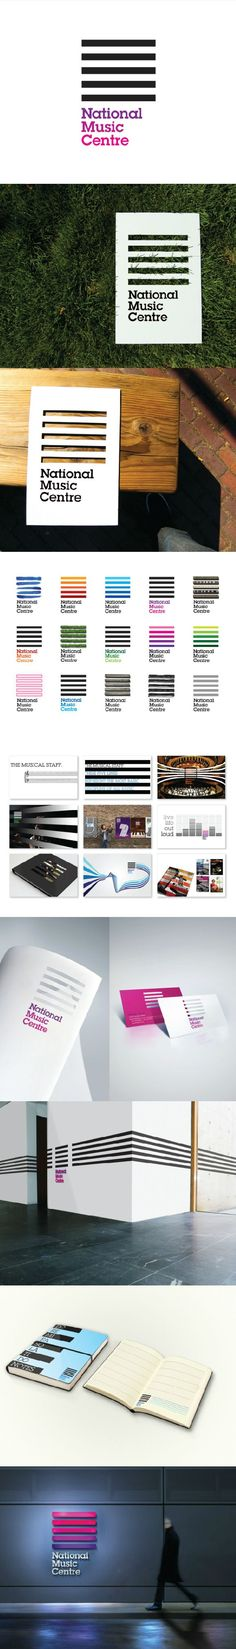 Pin by Blair Kneppers on Museums: Branding | Pinterest